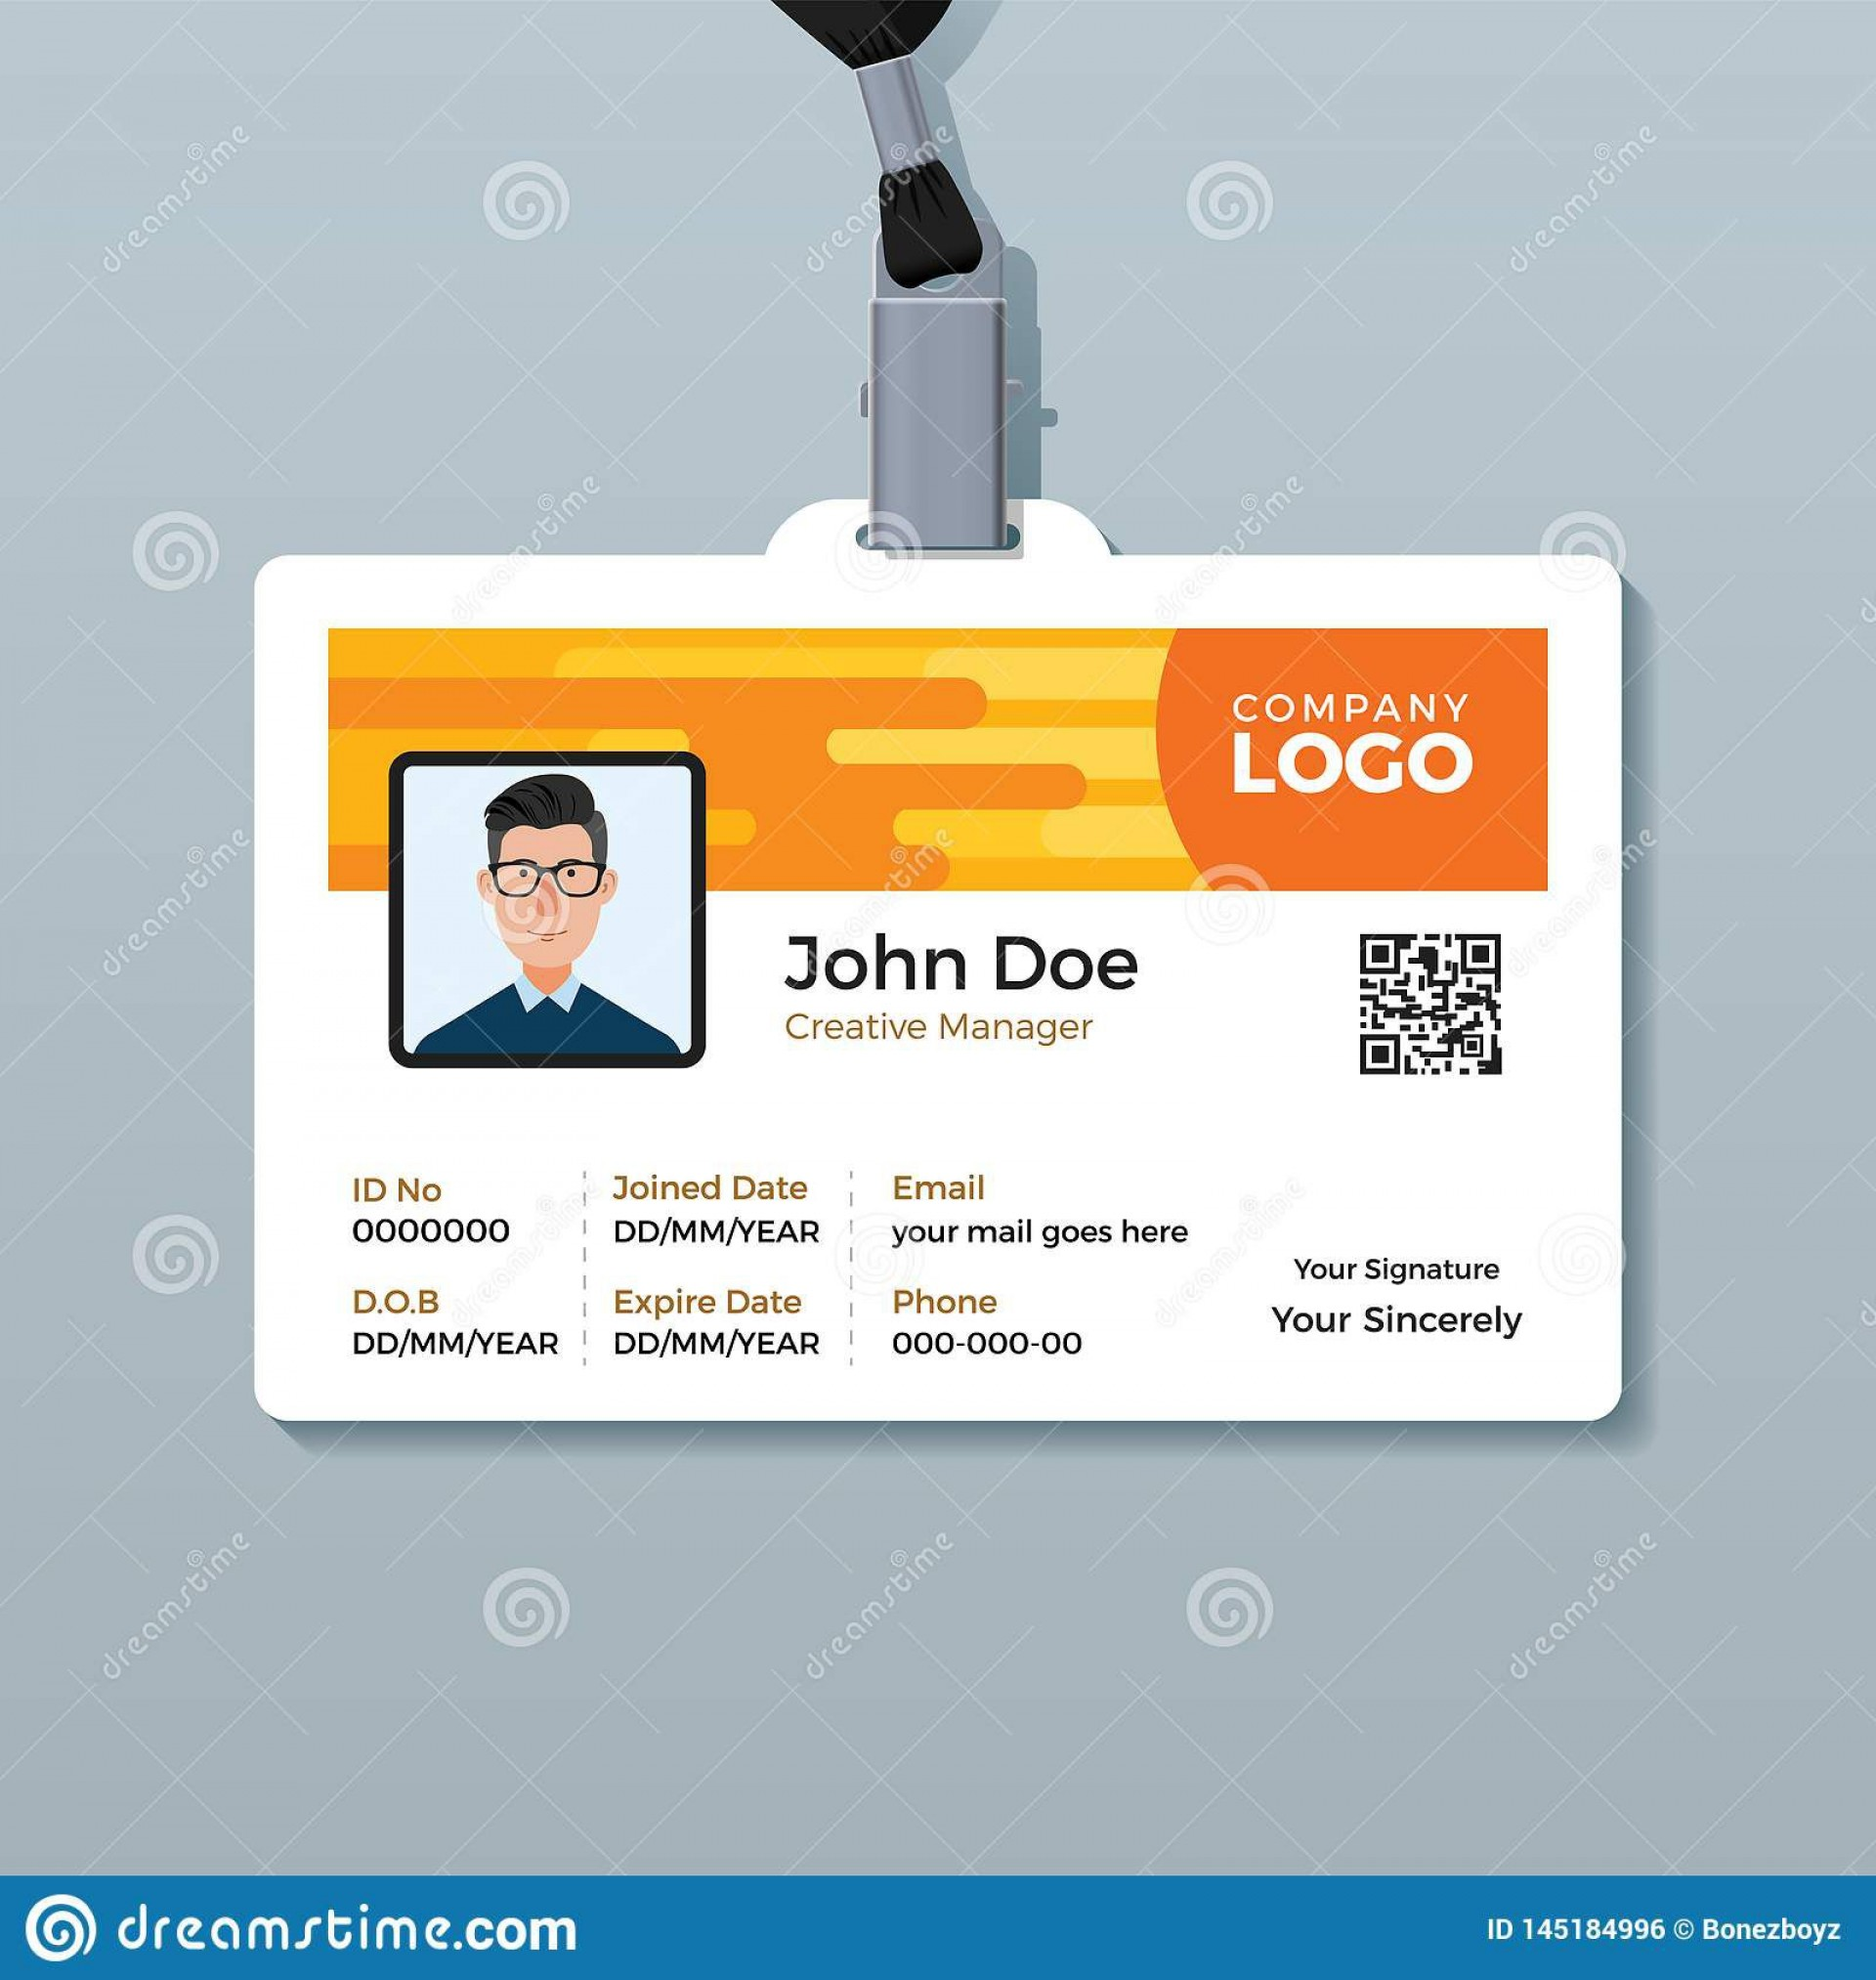 004 Unique Employee Id Badge Template Idea  Avery Card Free Download Word1920